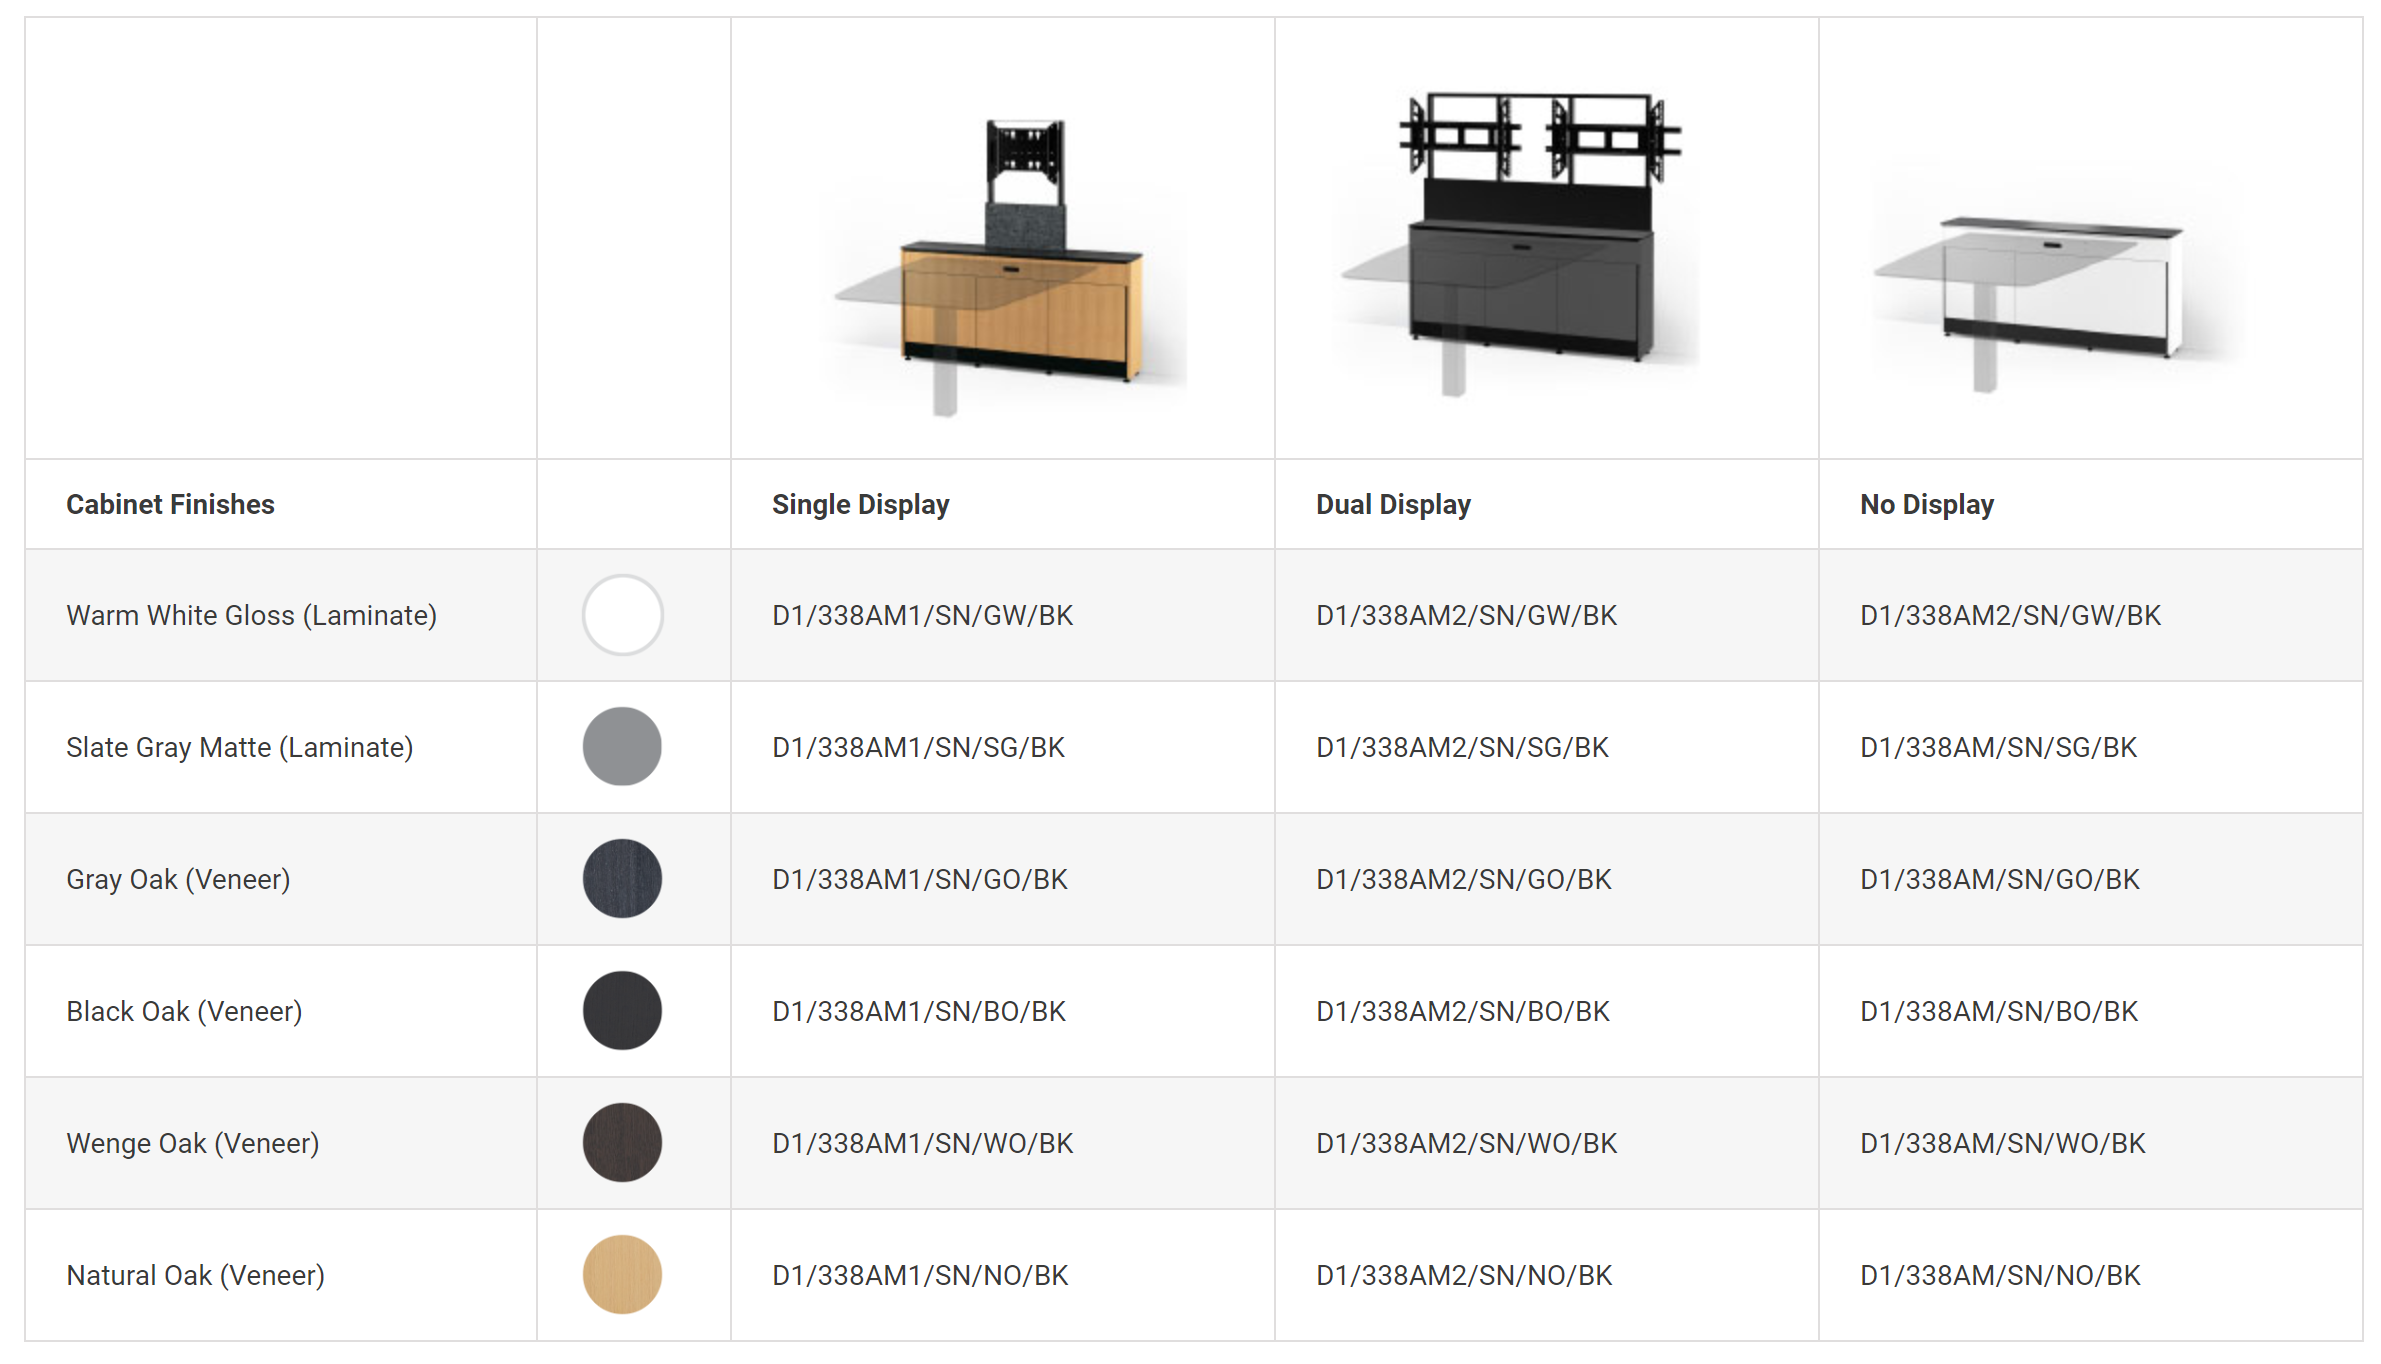 Model Numbers for Cabinets